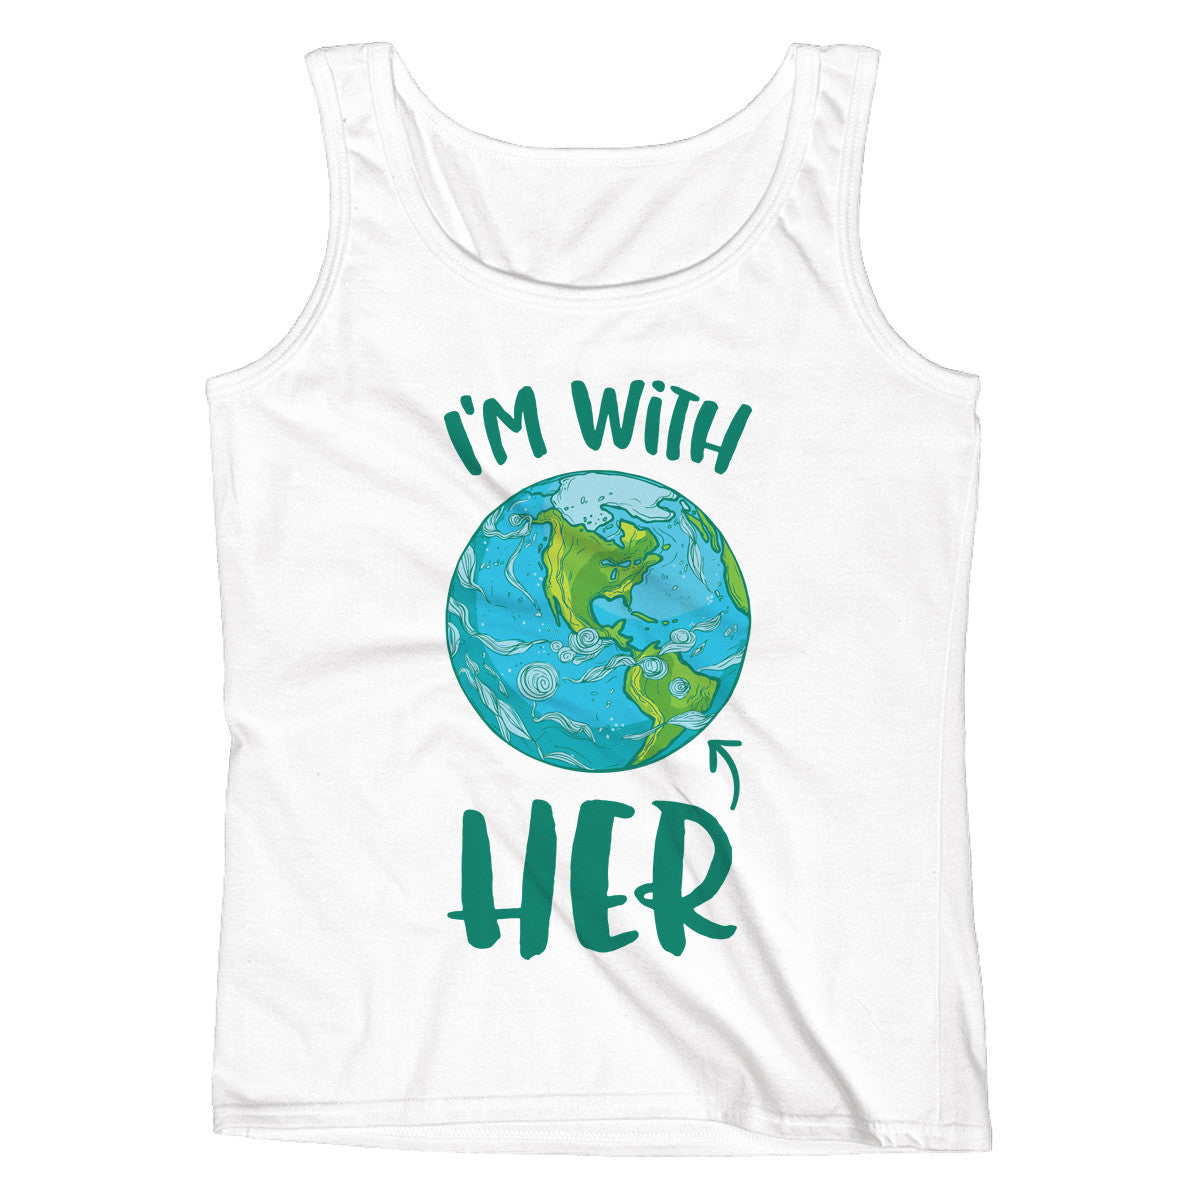 I'm With HER - Mother Earth Support Ladies' Tank - pipercleo.com